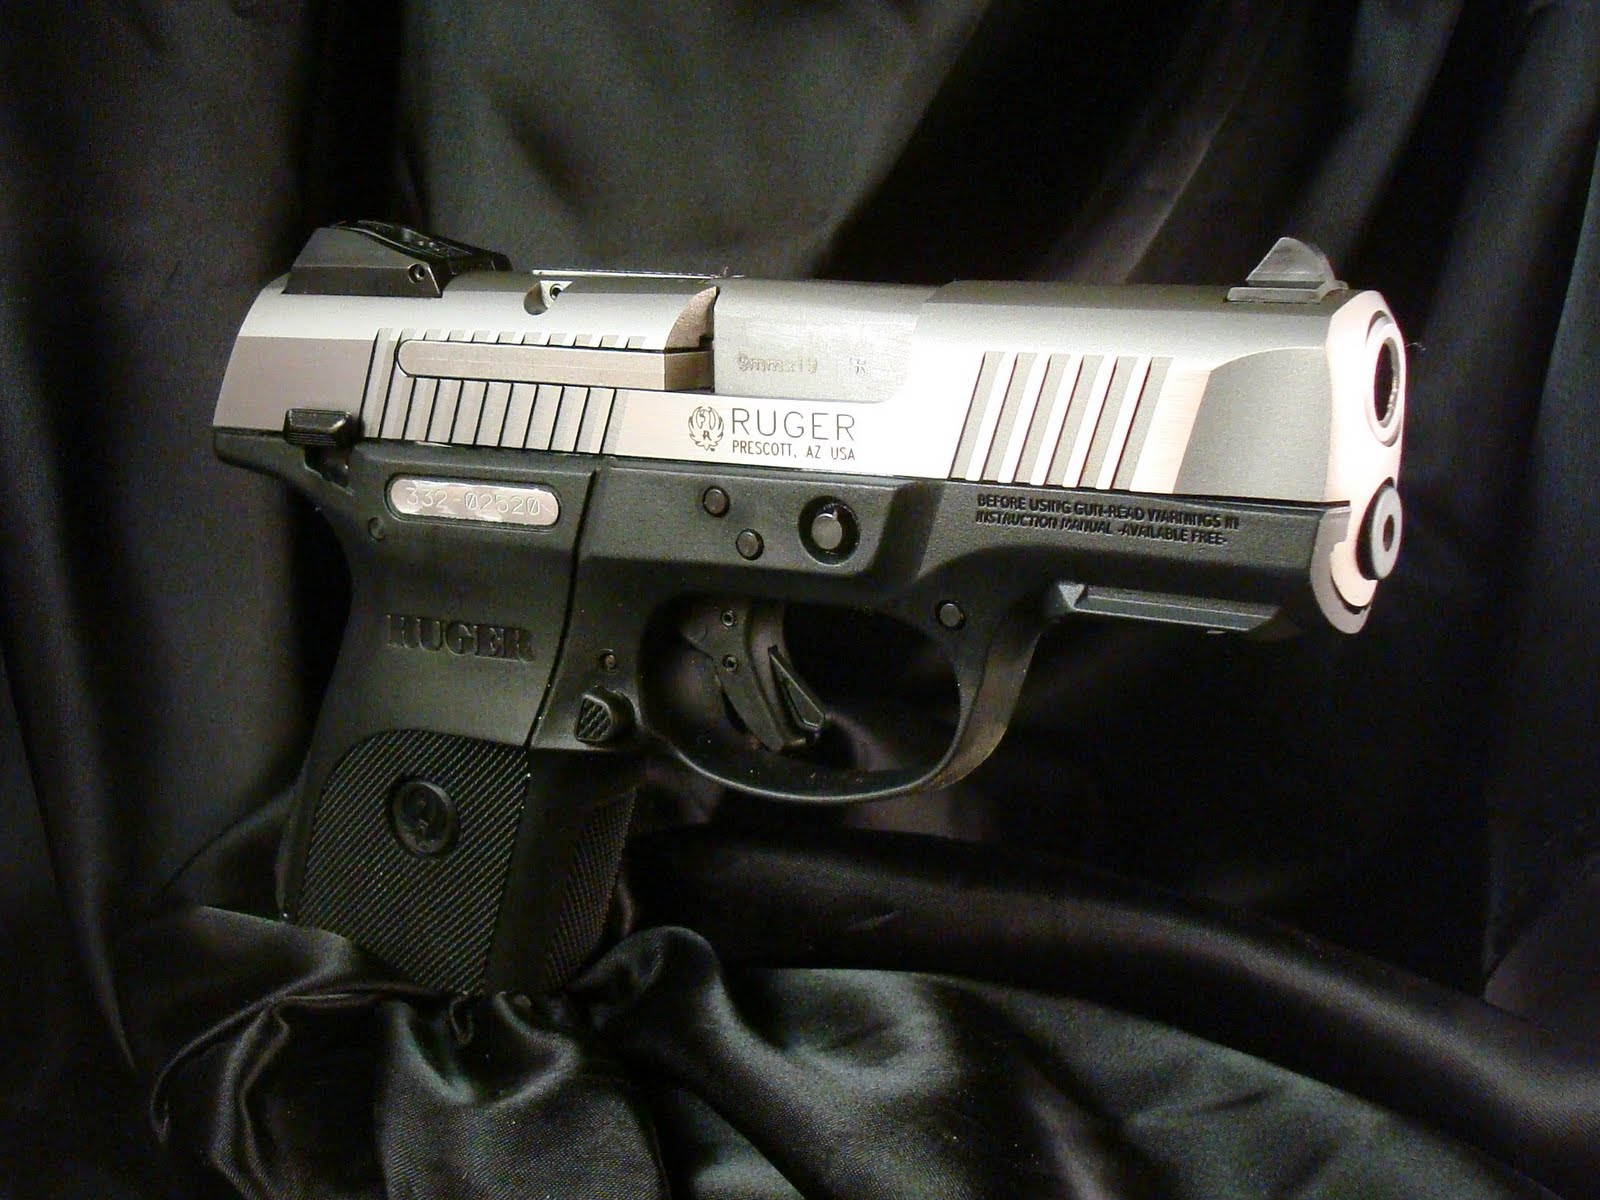 Average Joe's Handgun Reviews: Ruger SR9c Compact 9mm